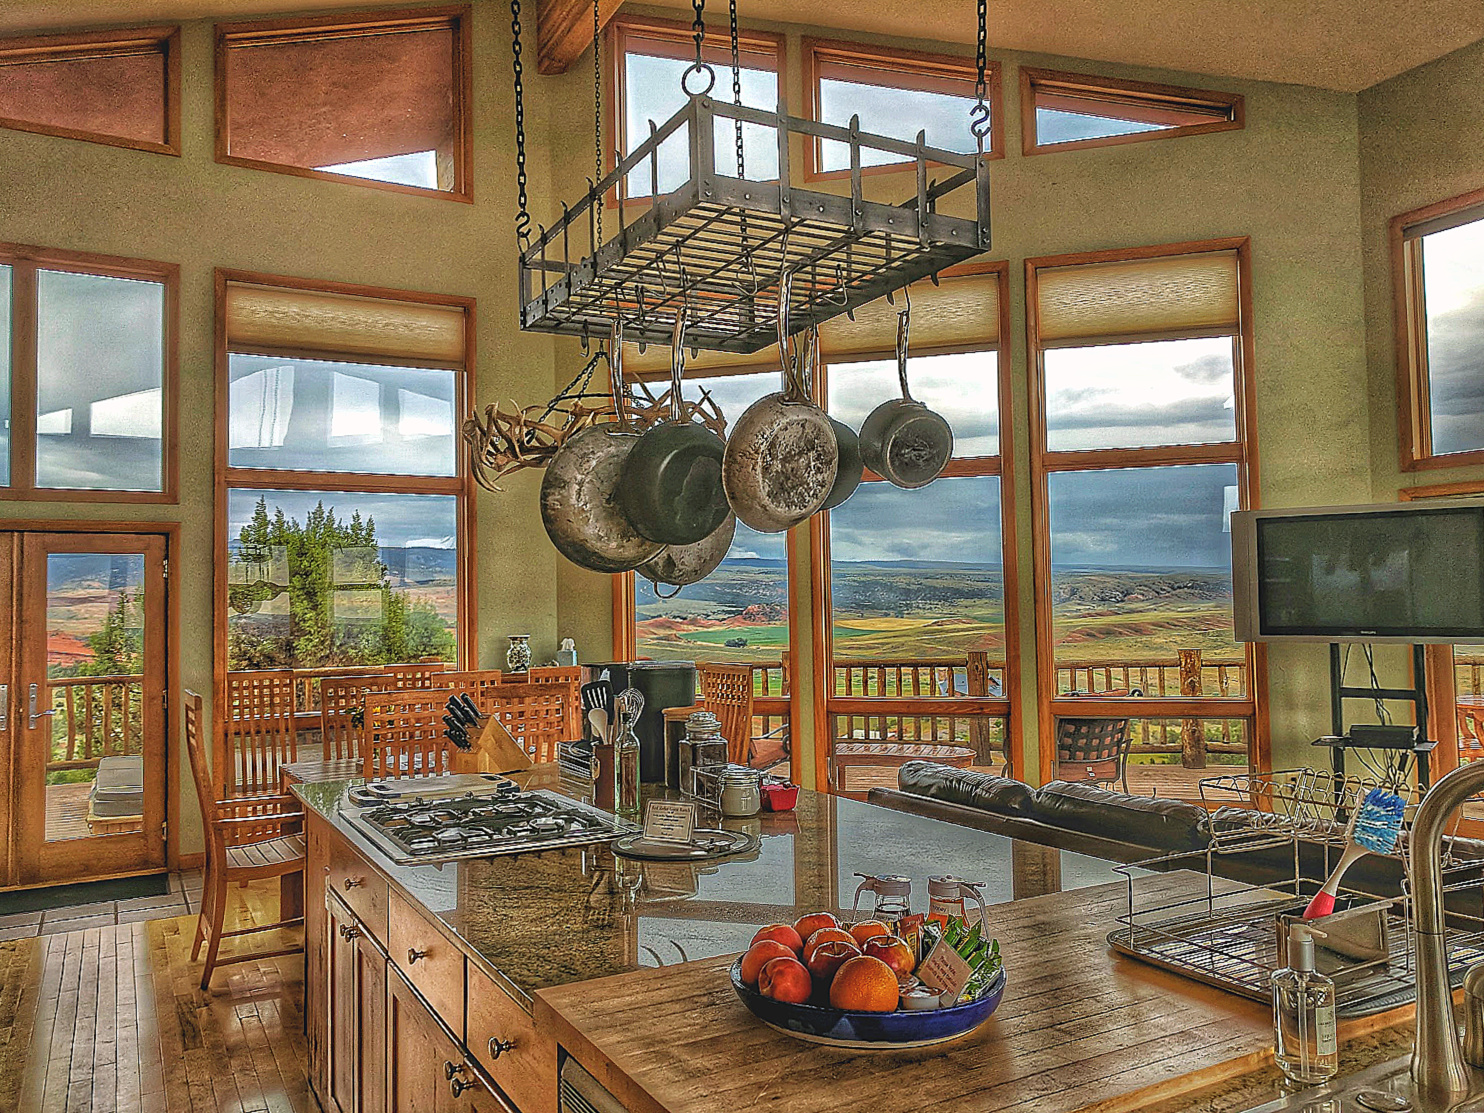 Kitchen at Red Reflet Ranch in Wyoming.